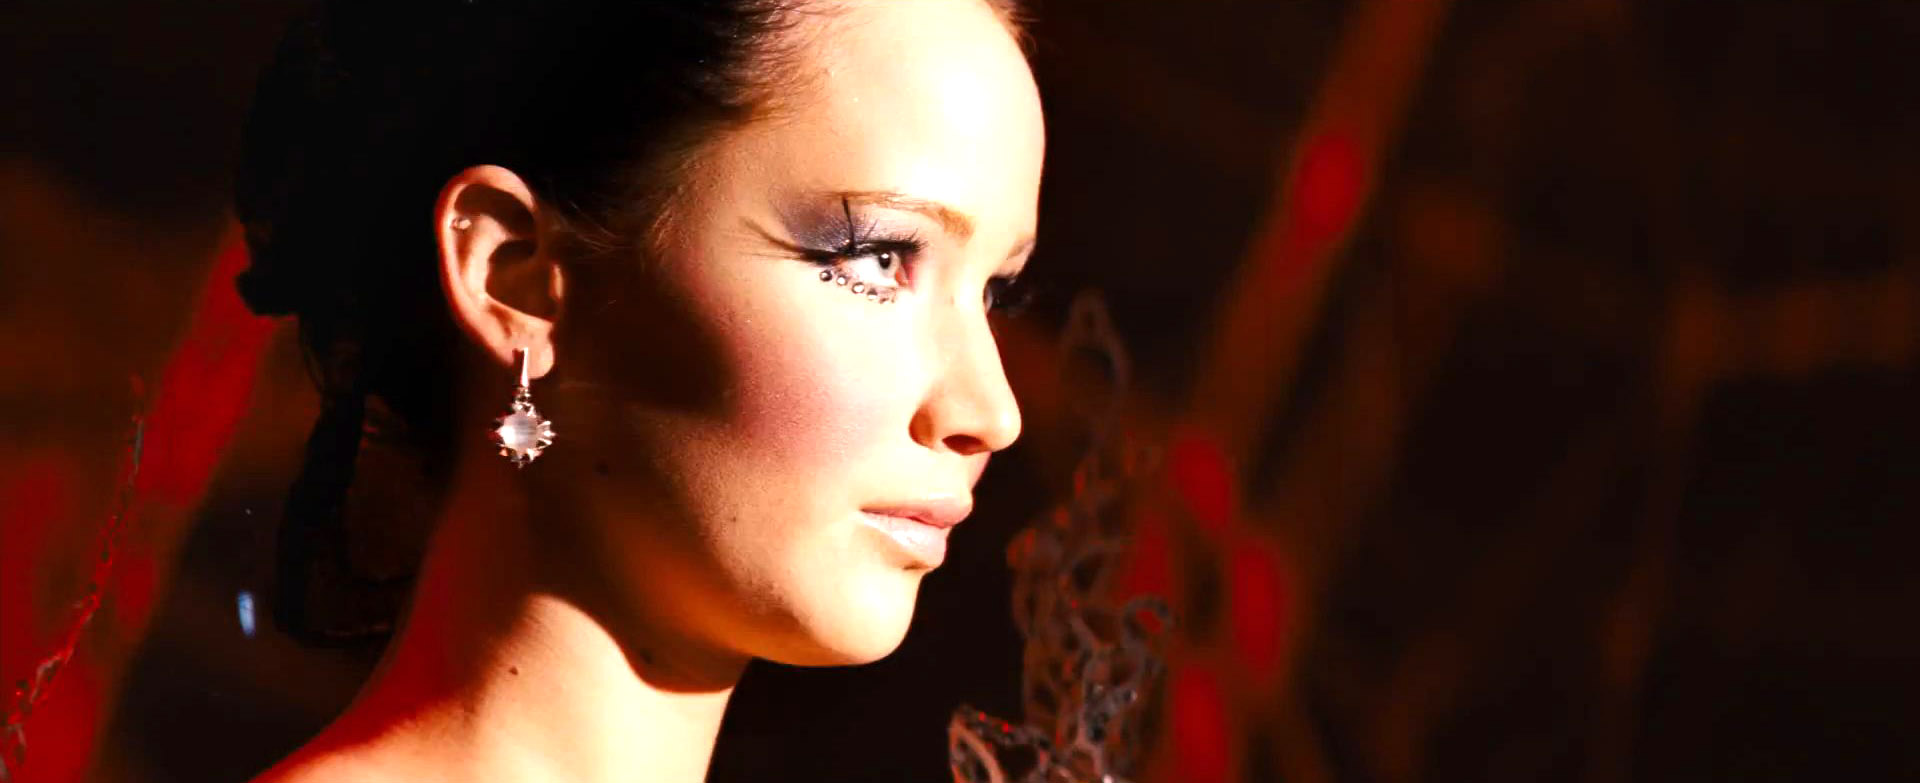 catching fire full movie download